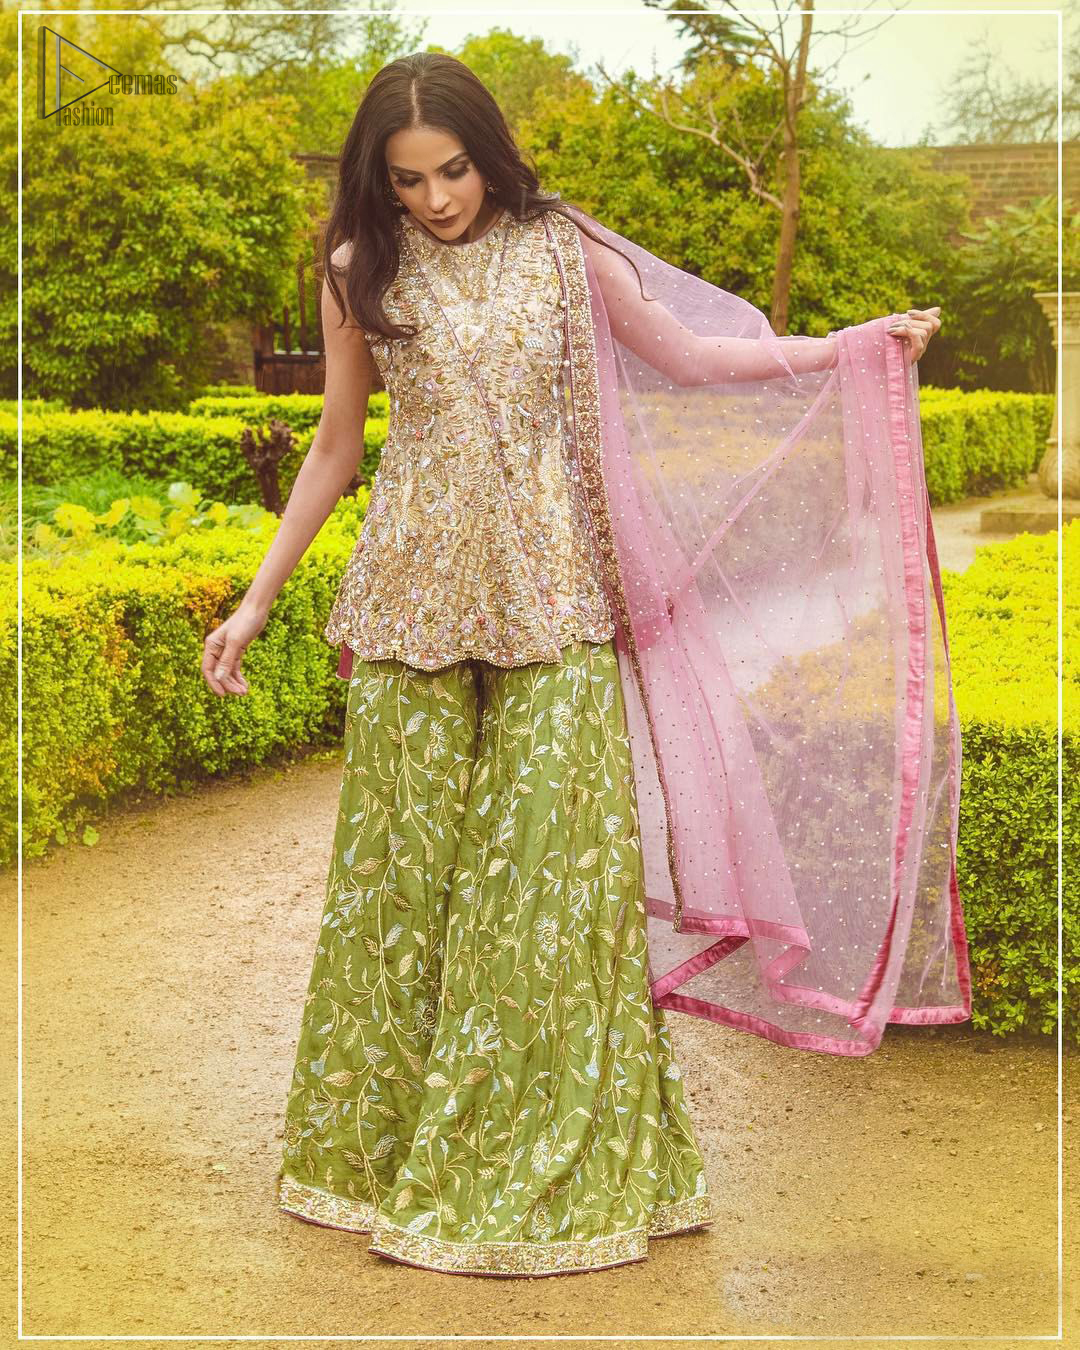 Wear this soft and supple hues richly decorated by shade pink with zardozi embroidered motifs and floral bootis all over the shirt. The outfit is finished by beautiful overlaping and scalloped hemline. It comes with an exquisite sharara with embroidered border and floral bootis all over to give it a regal look. The outfit is coordinated with pink net dupatta having sequins spray all over the ground and zardozi embellished borders along the length.